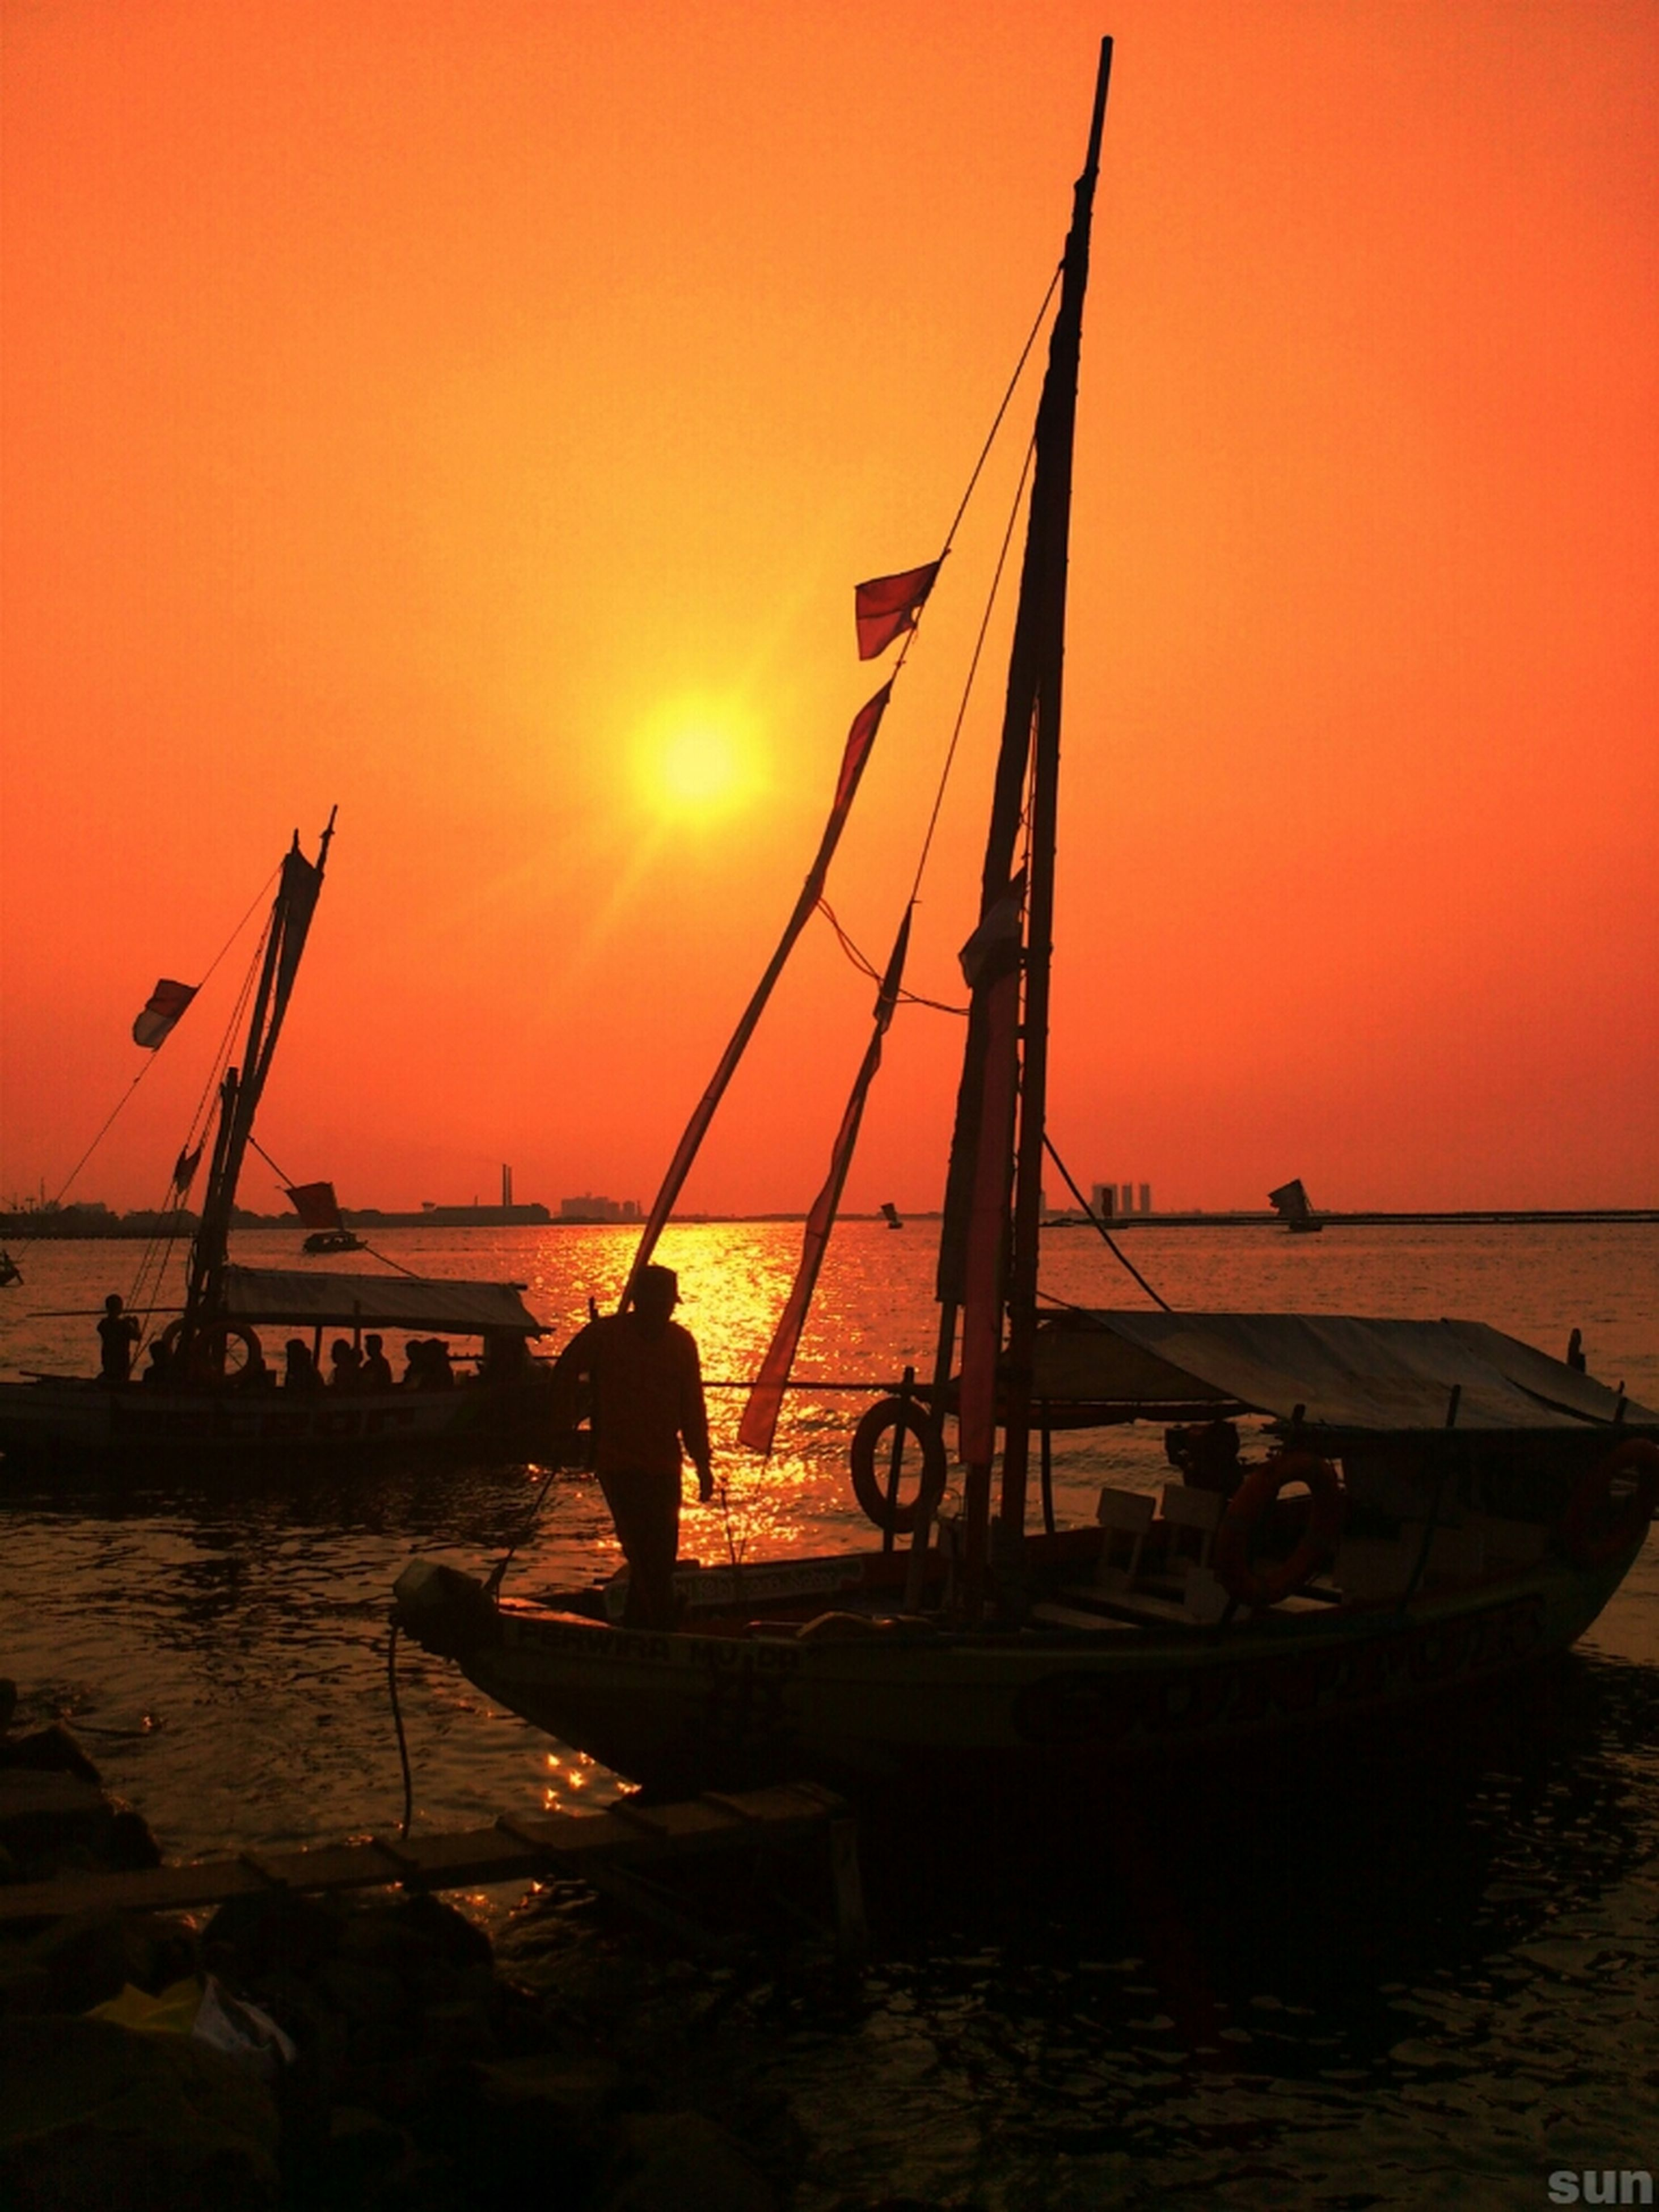 sunset, transportation, nautical vessel, water, mode of transport, boat, orange color, sea, silhouette, sun, moored, mast, scenics, sky, beauty in nature, tranquil scene, travel, horizon over water, tranquility, sailboat